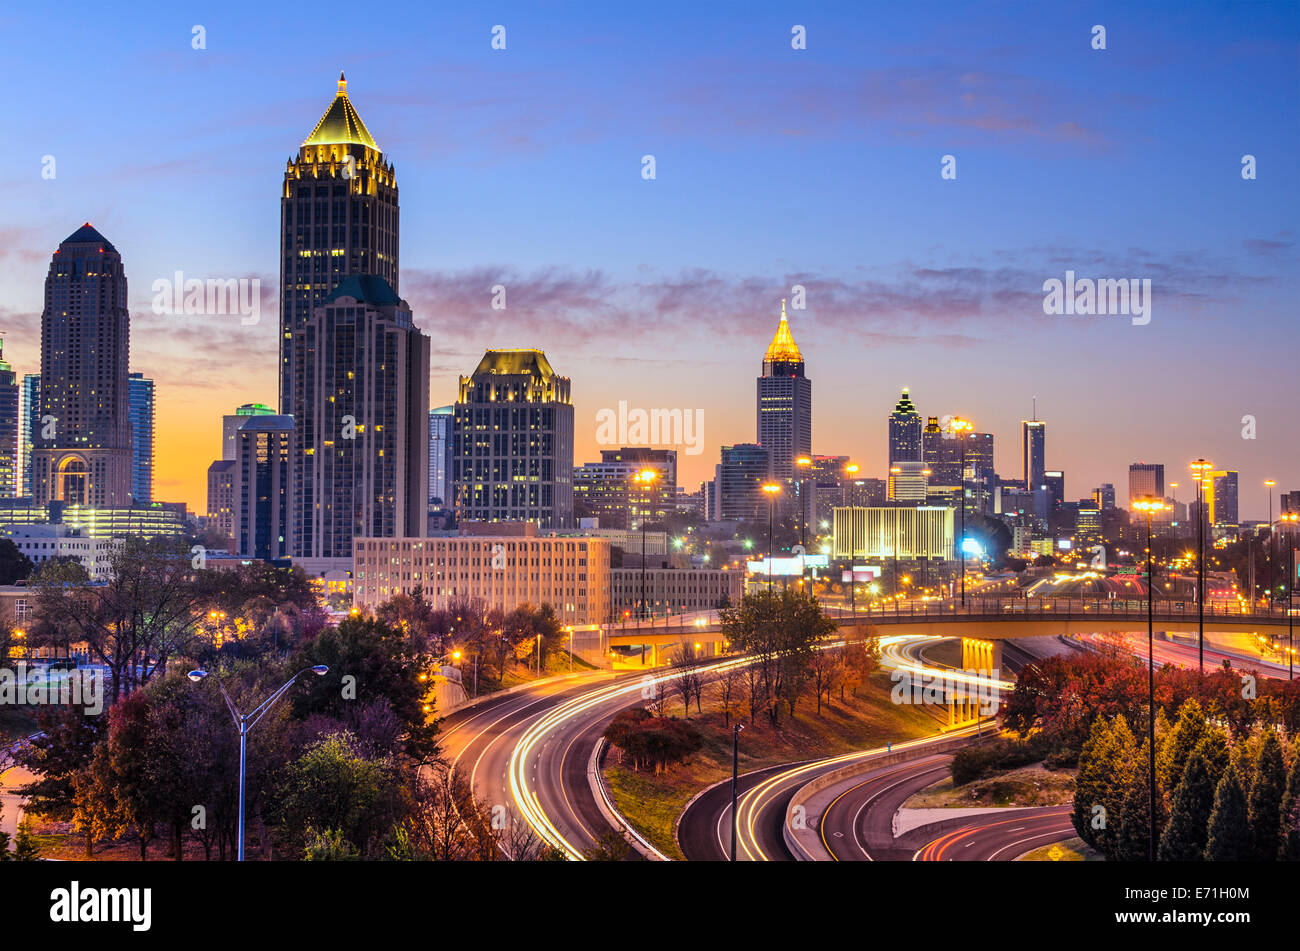 Atlanta, Georgia downtown skyline at sunrise. - Stock Image